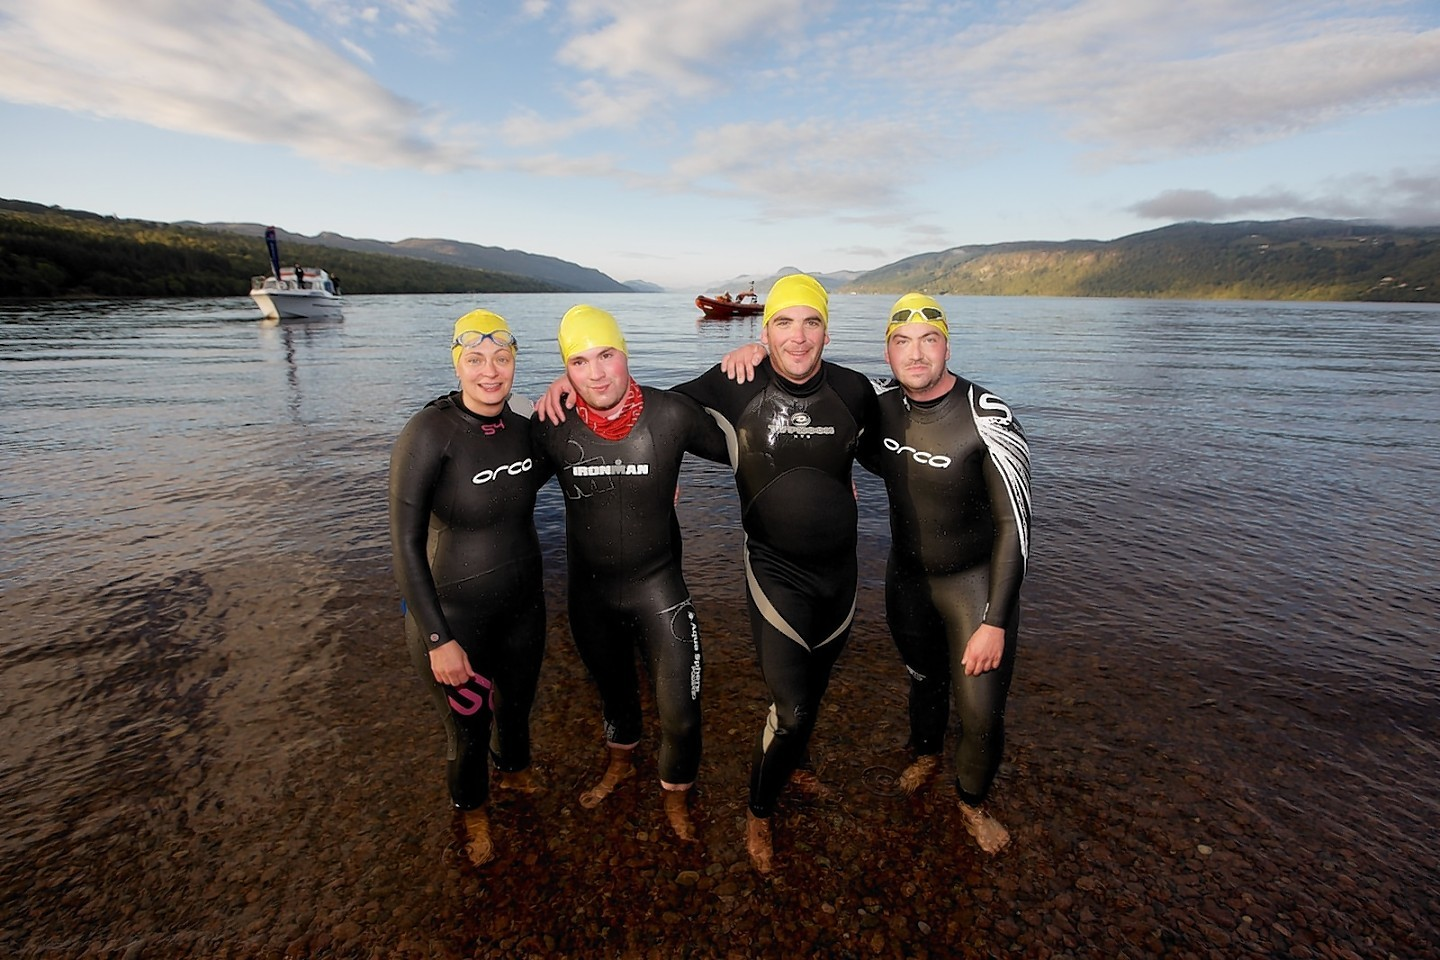 Swimmers Jamie Young, Kris Gordon, Michelle Gordon and Al Marshall